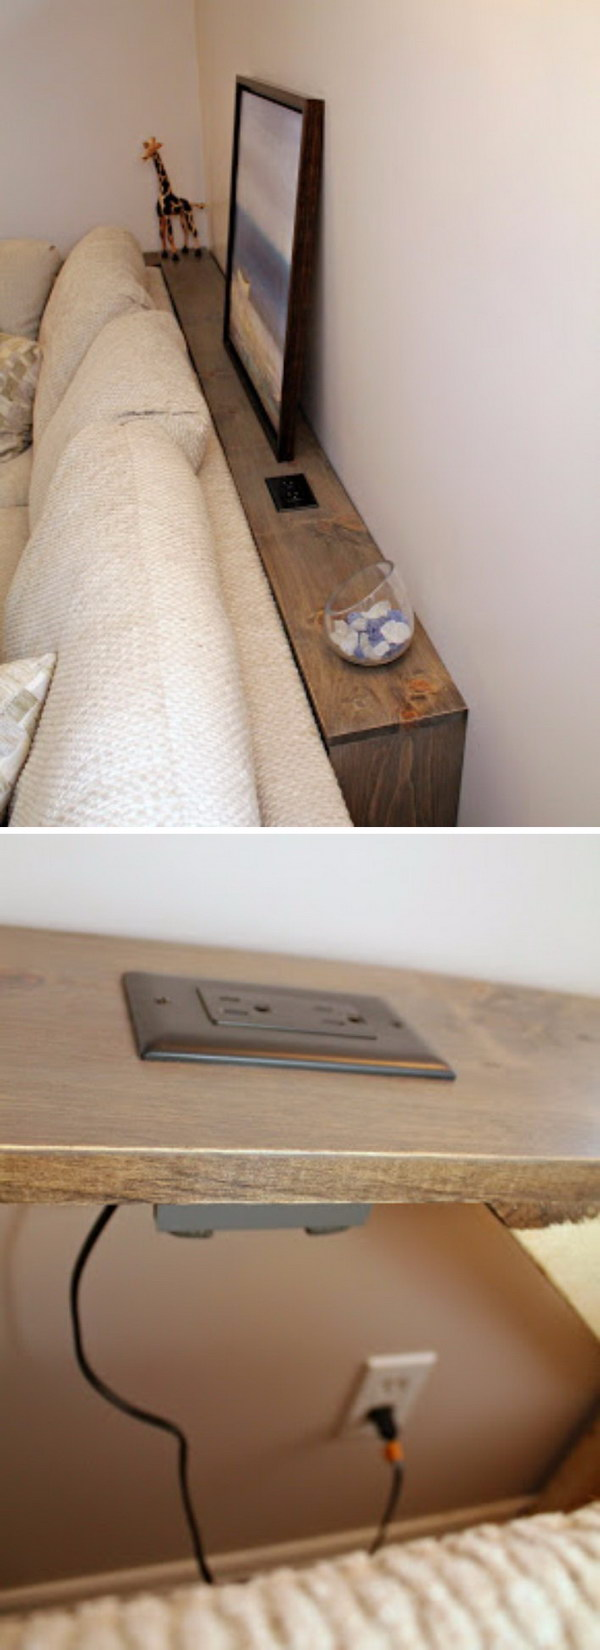 This DIY Sofa Table Behind Built-In Outlets Allows You Plug In Your Electronics Easily.